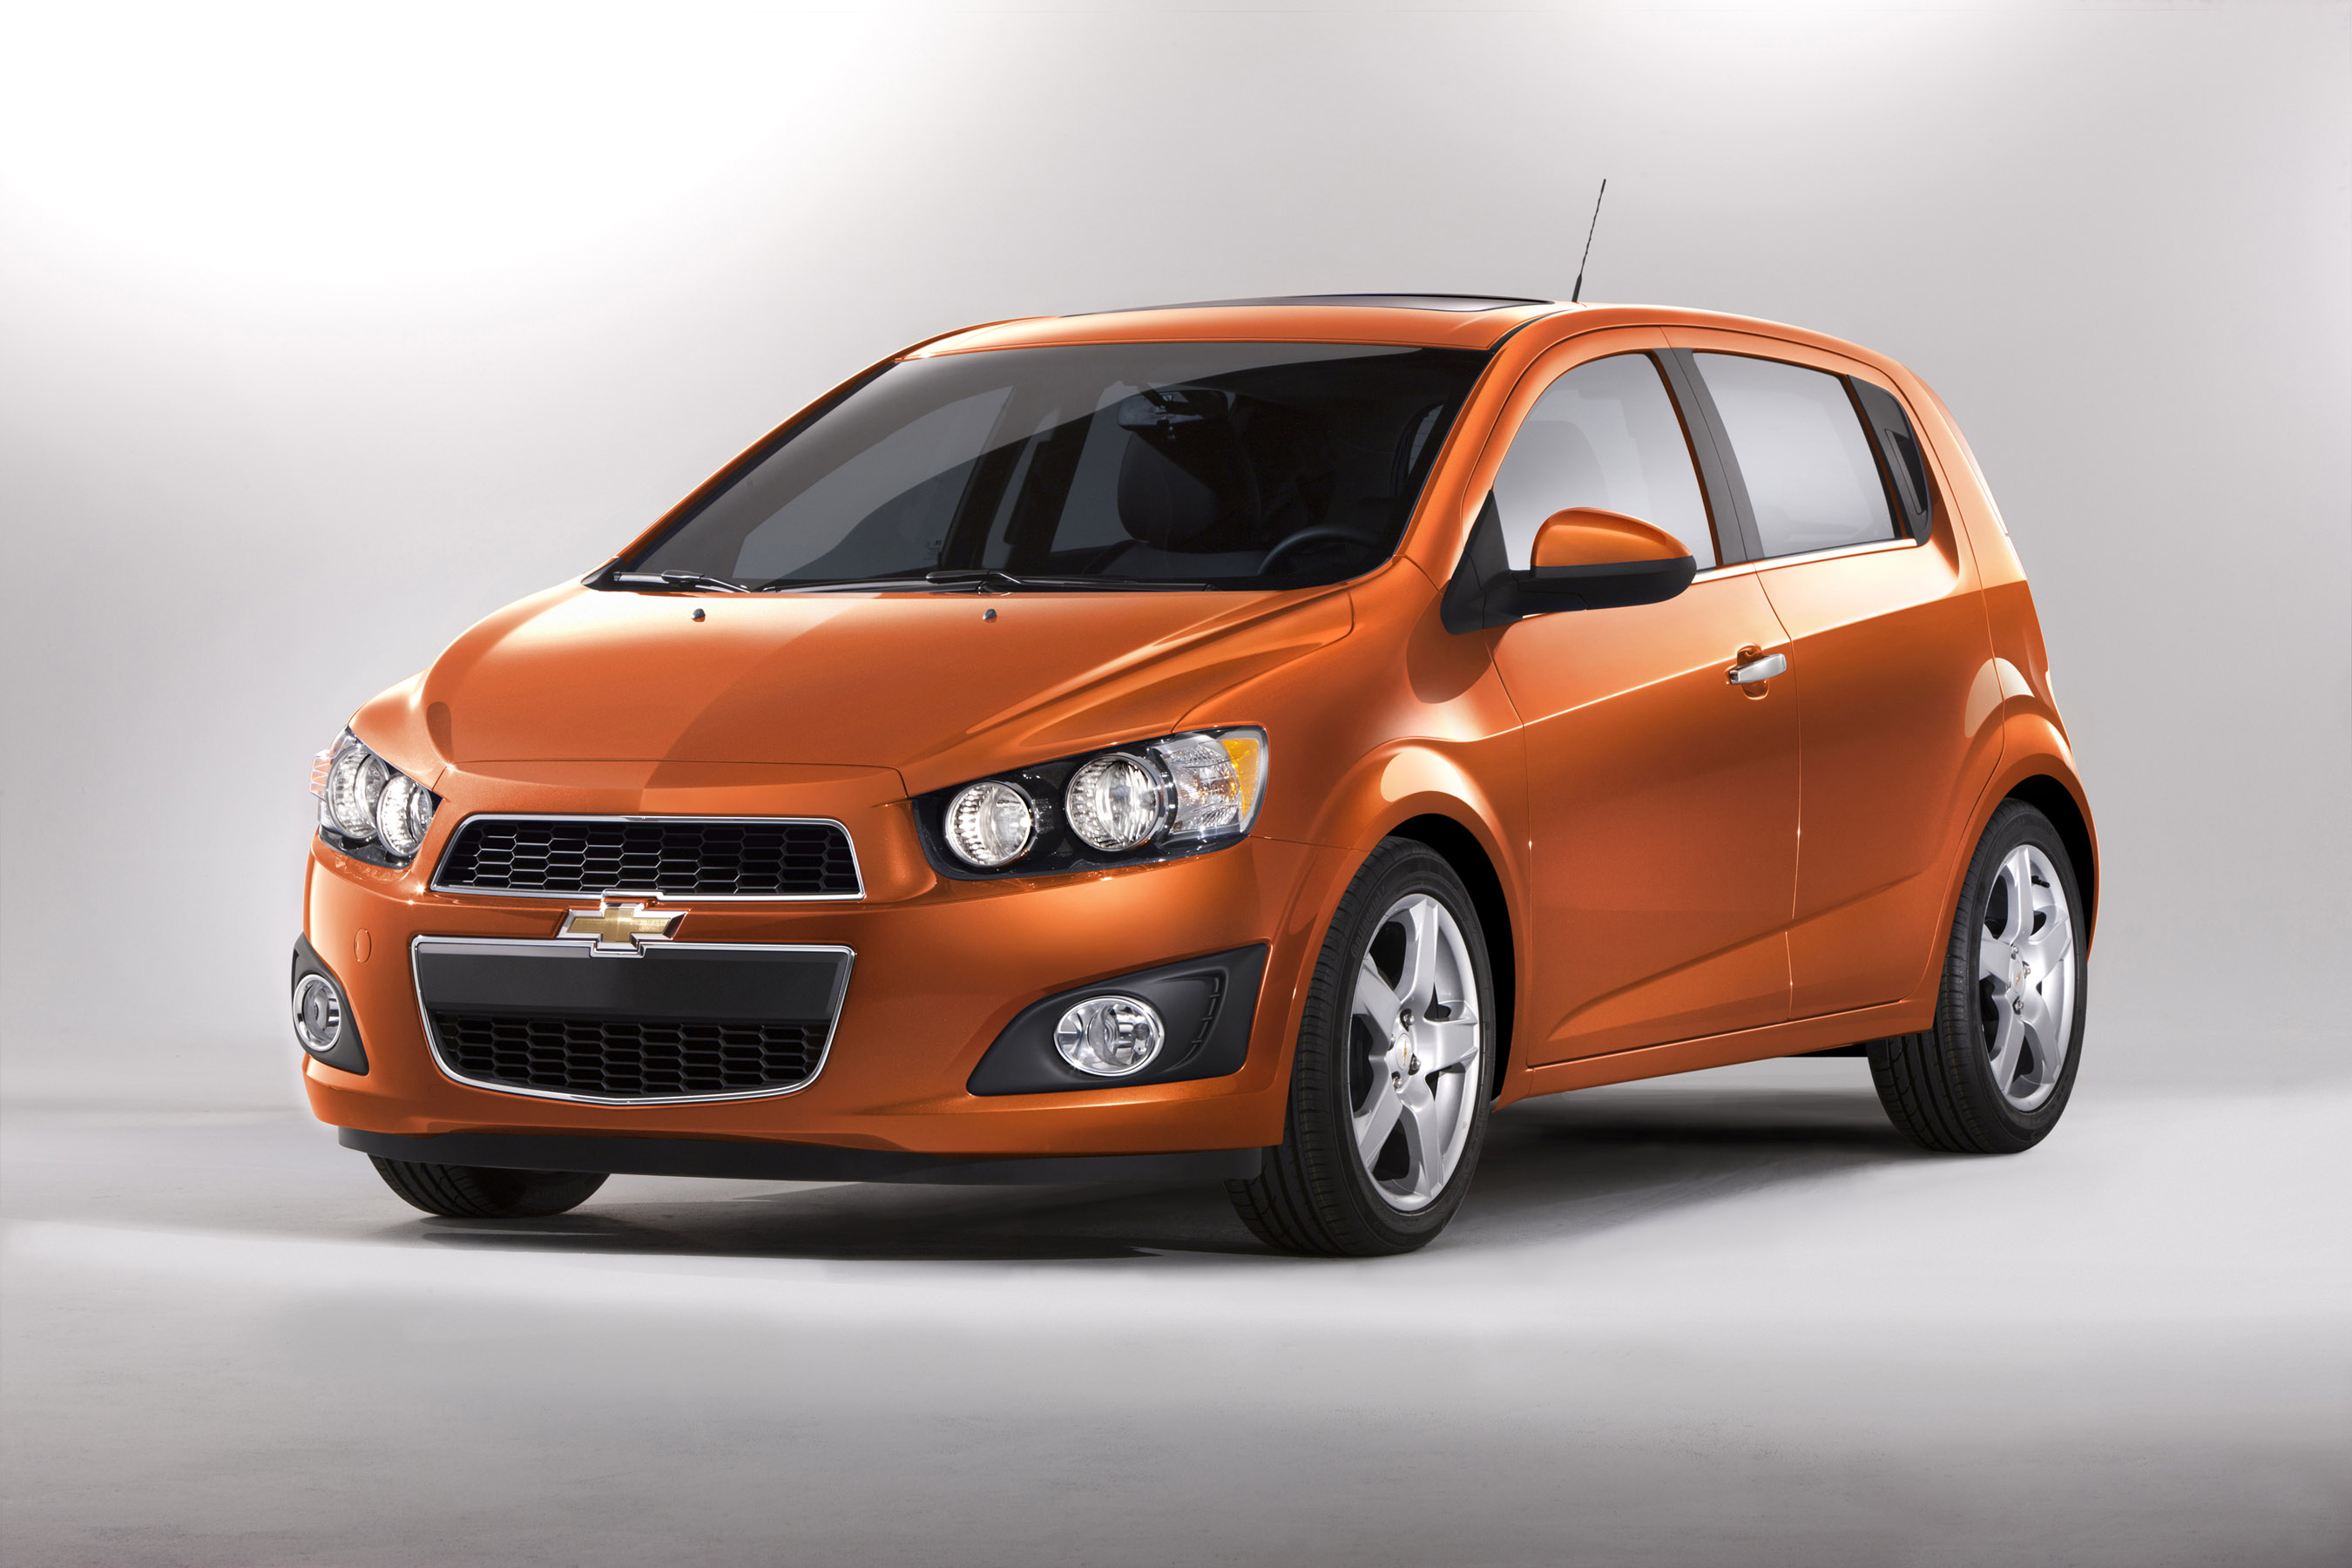 New Small Cars 2012 Chevy Sonic Nissan Versa Hyundai Accent